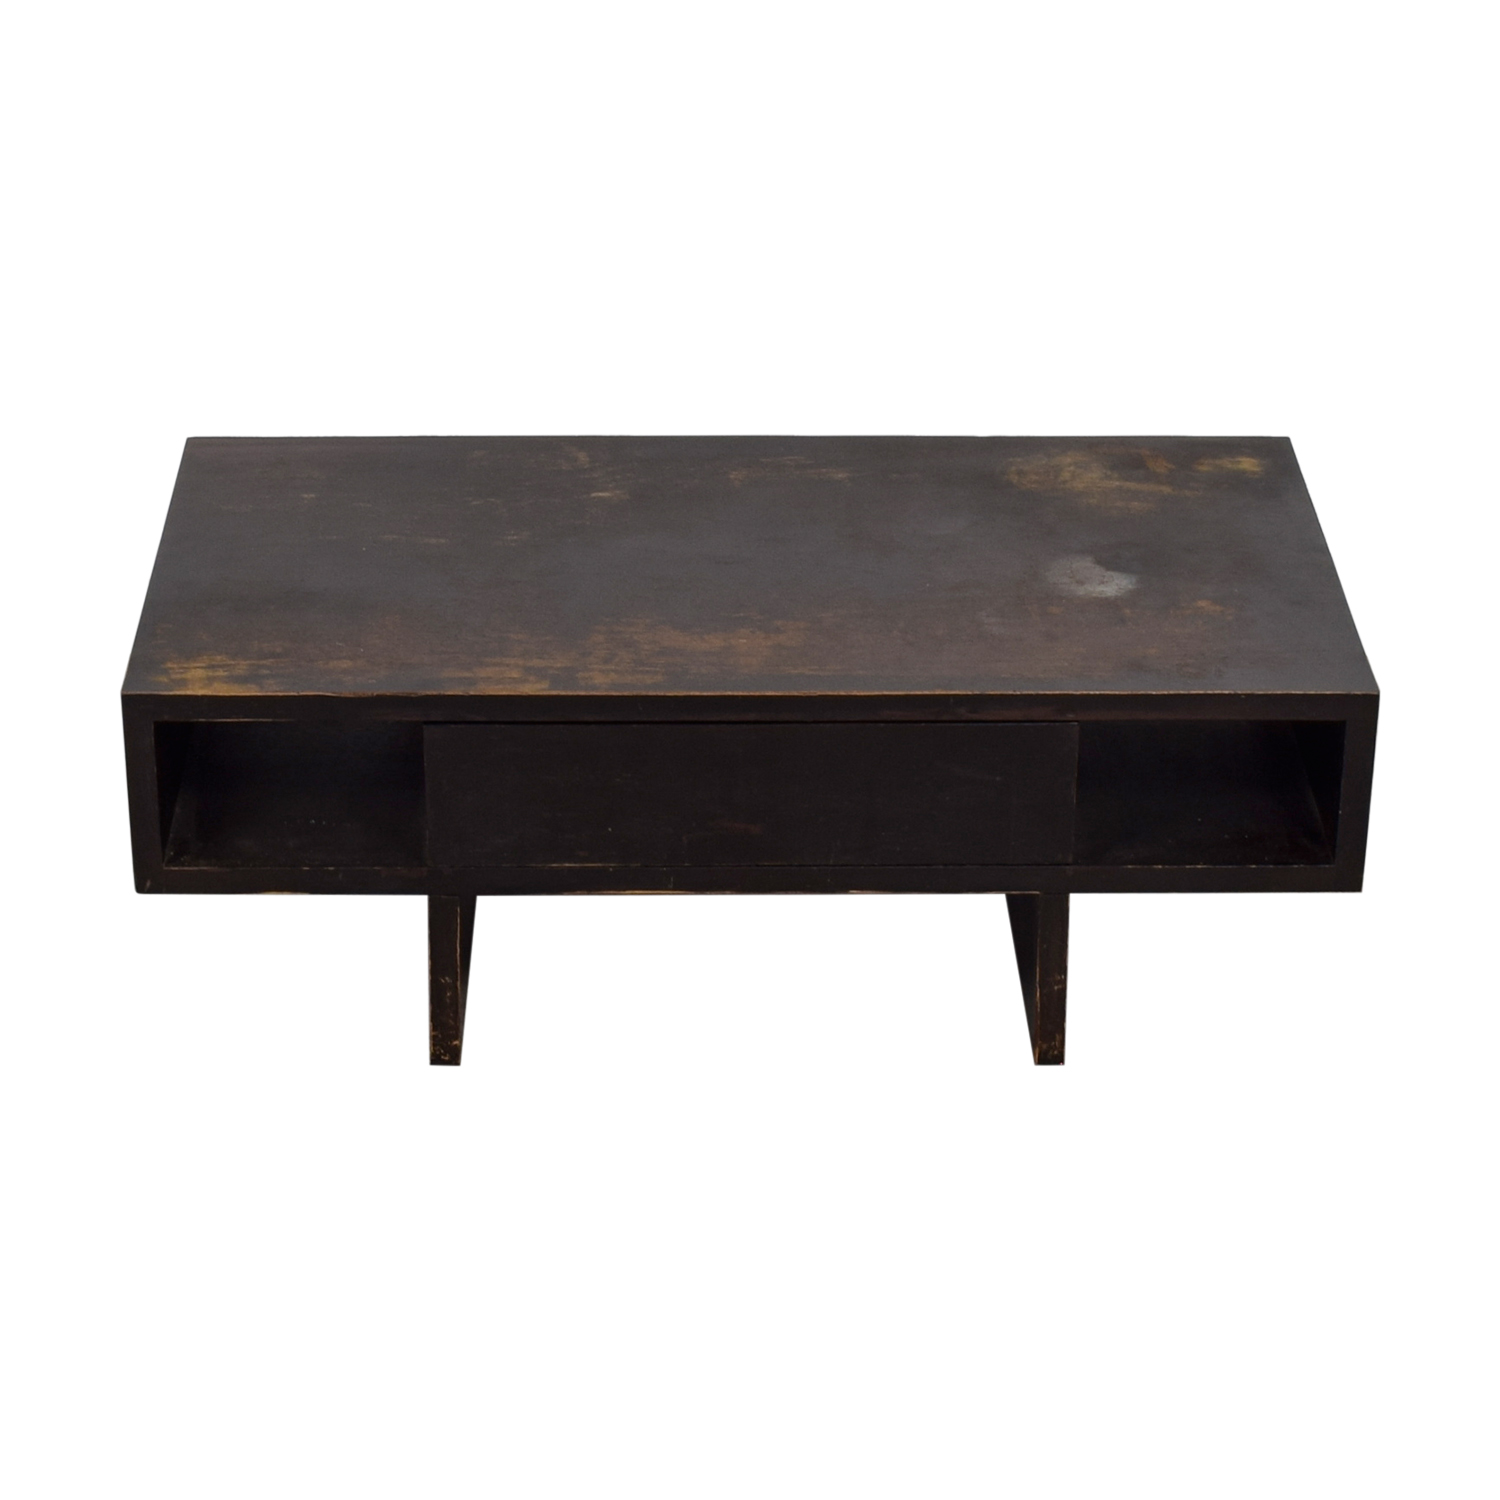 West Elm West Elm Distressed Black Storage Coffee Table second hand